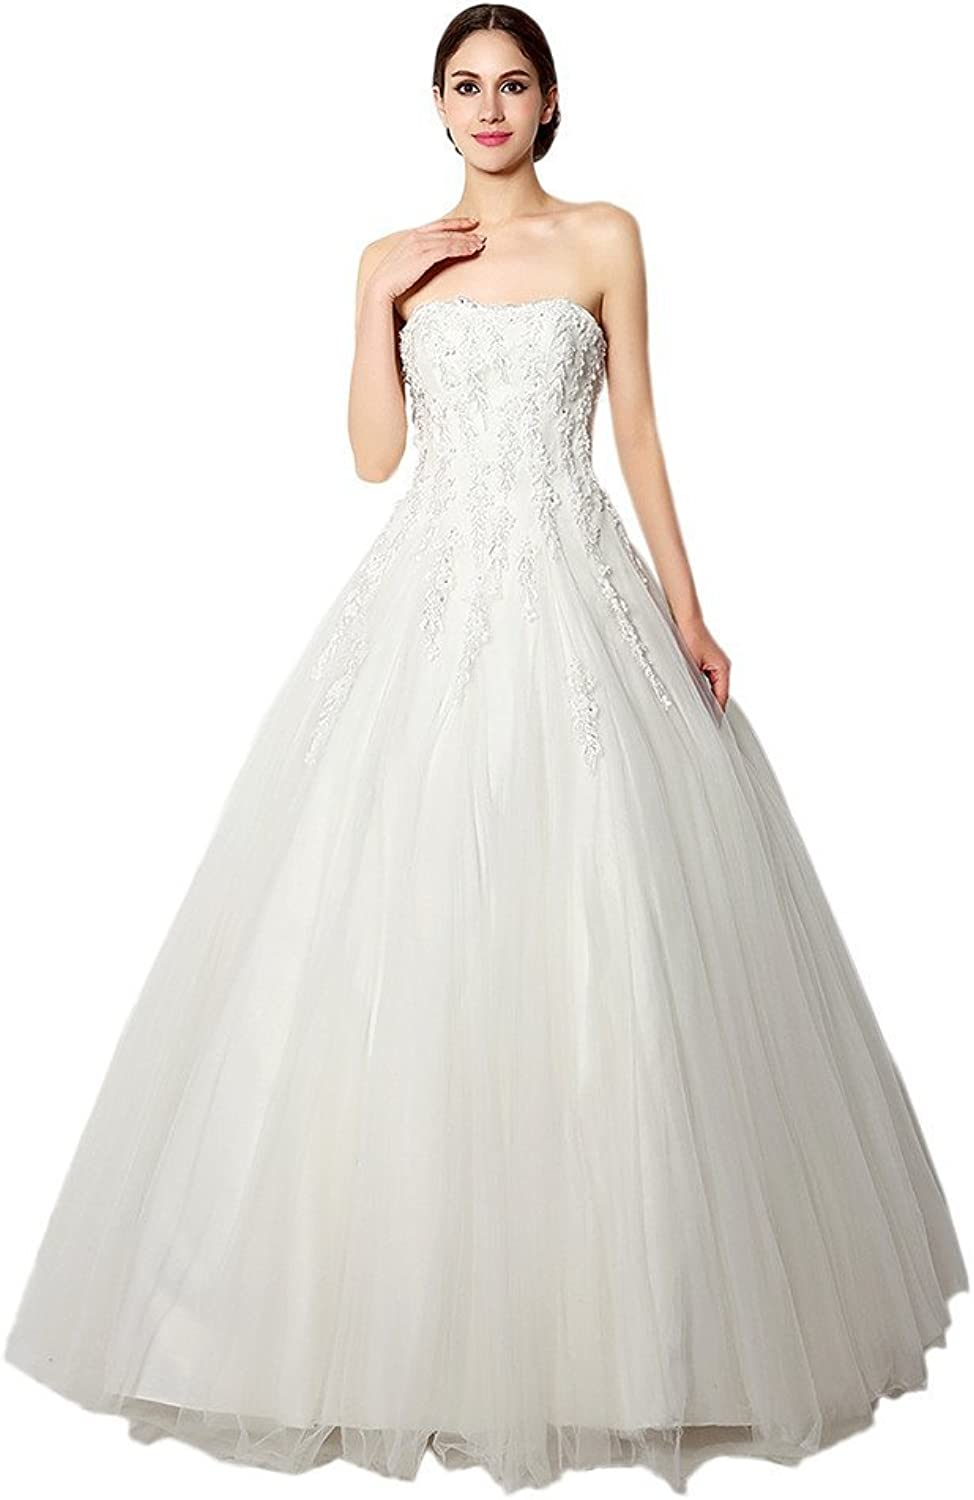 Angel Bride White Strapless Ball Gown LaceUp Wedding Dresses Bridal Gowns